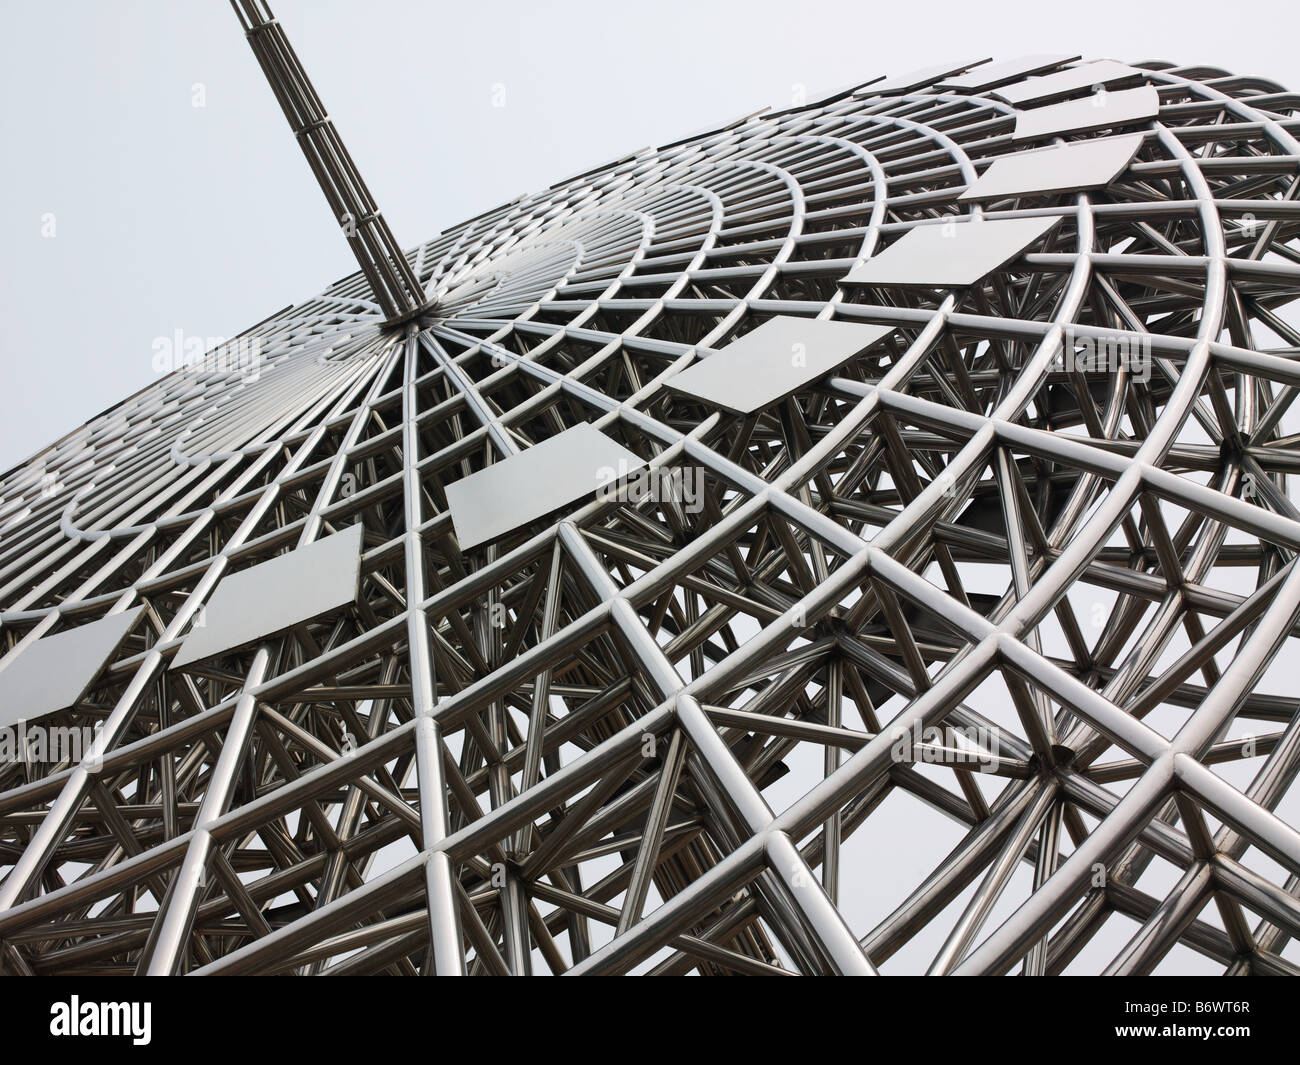 Sundial sculpture in pudong shanghai - Stock Image